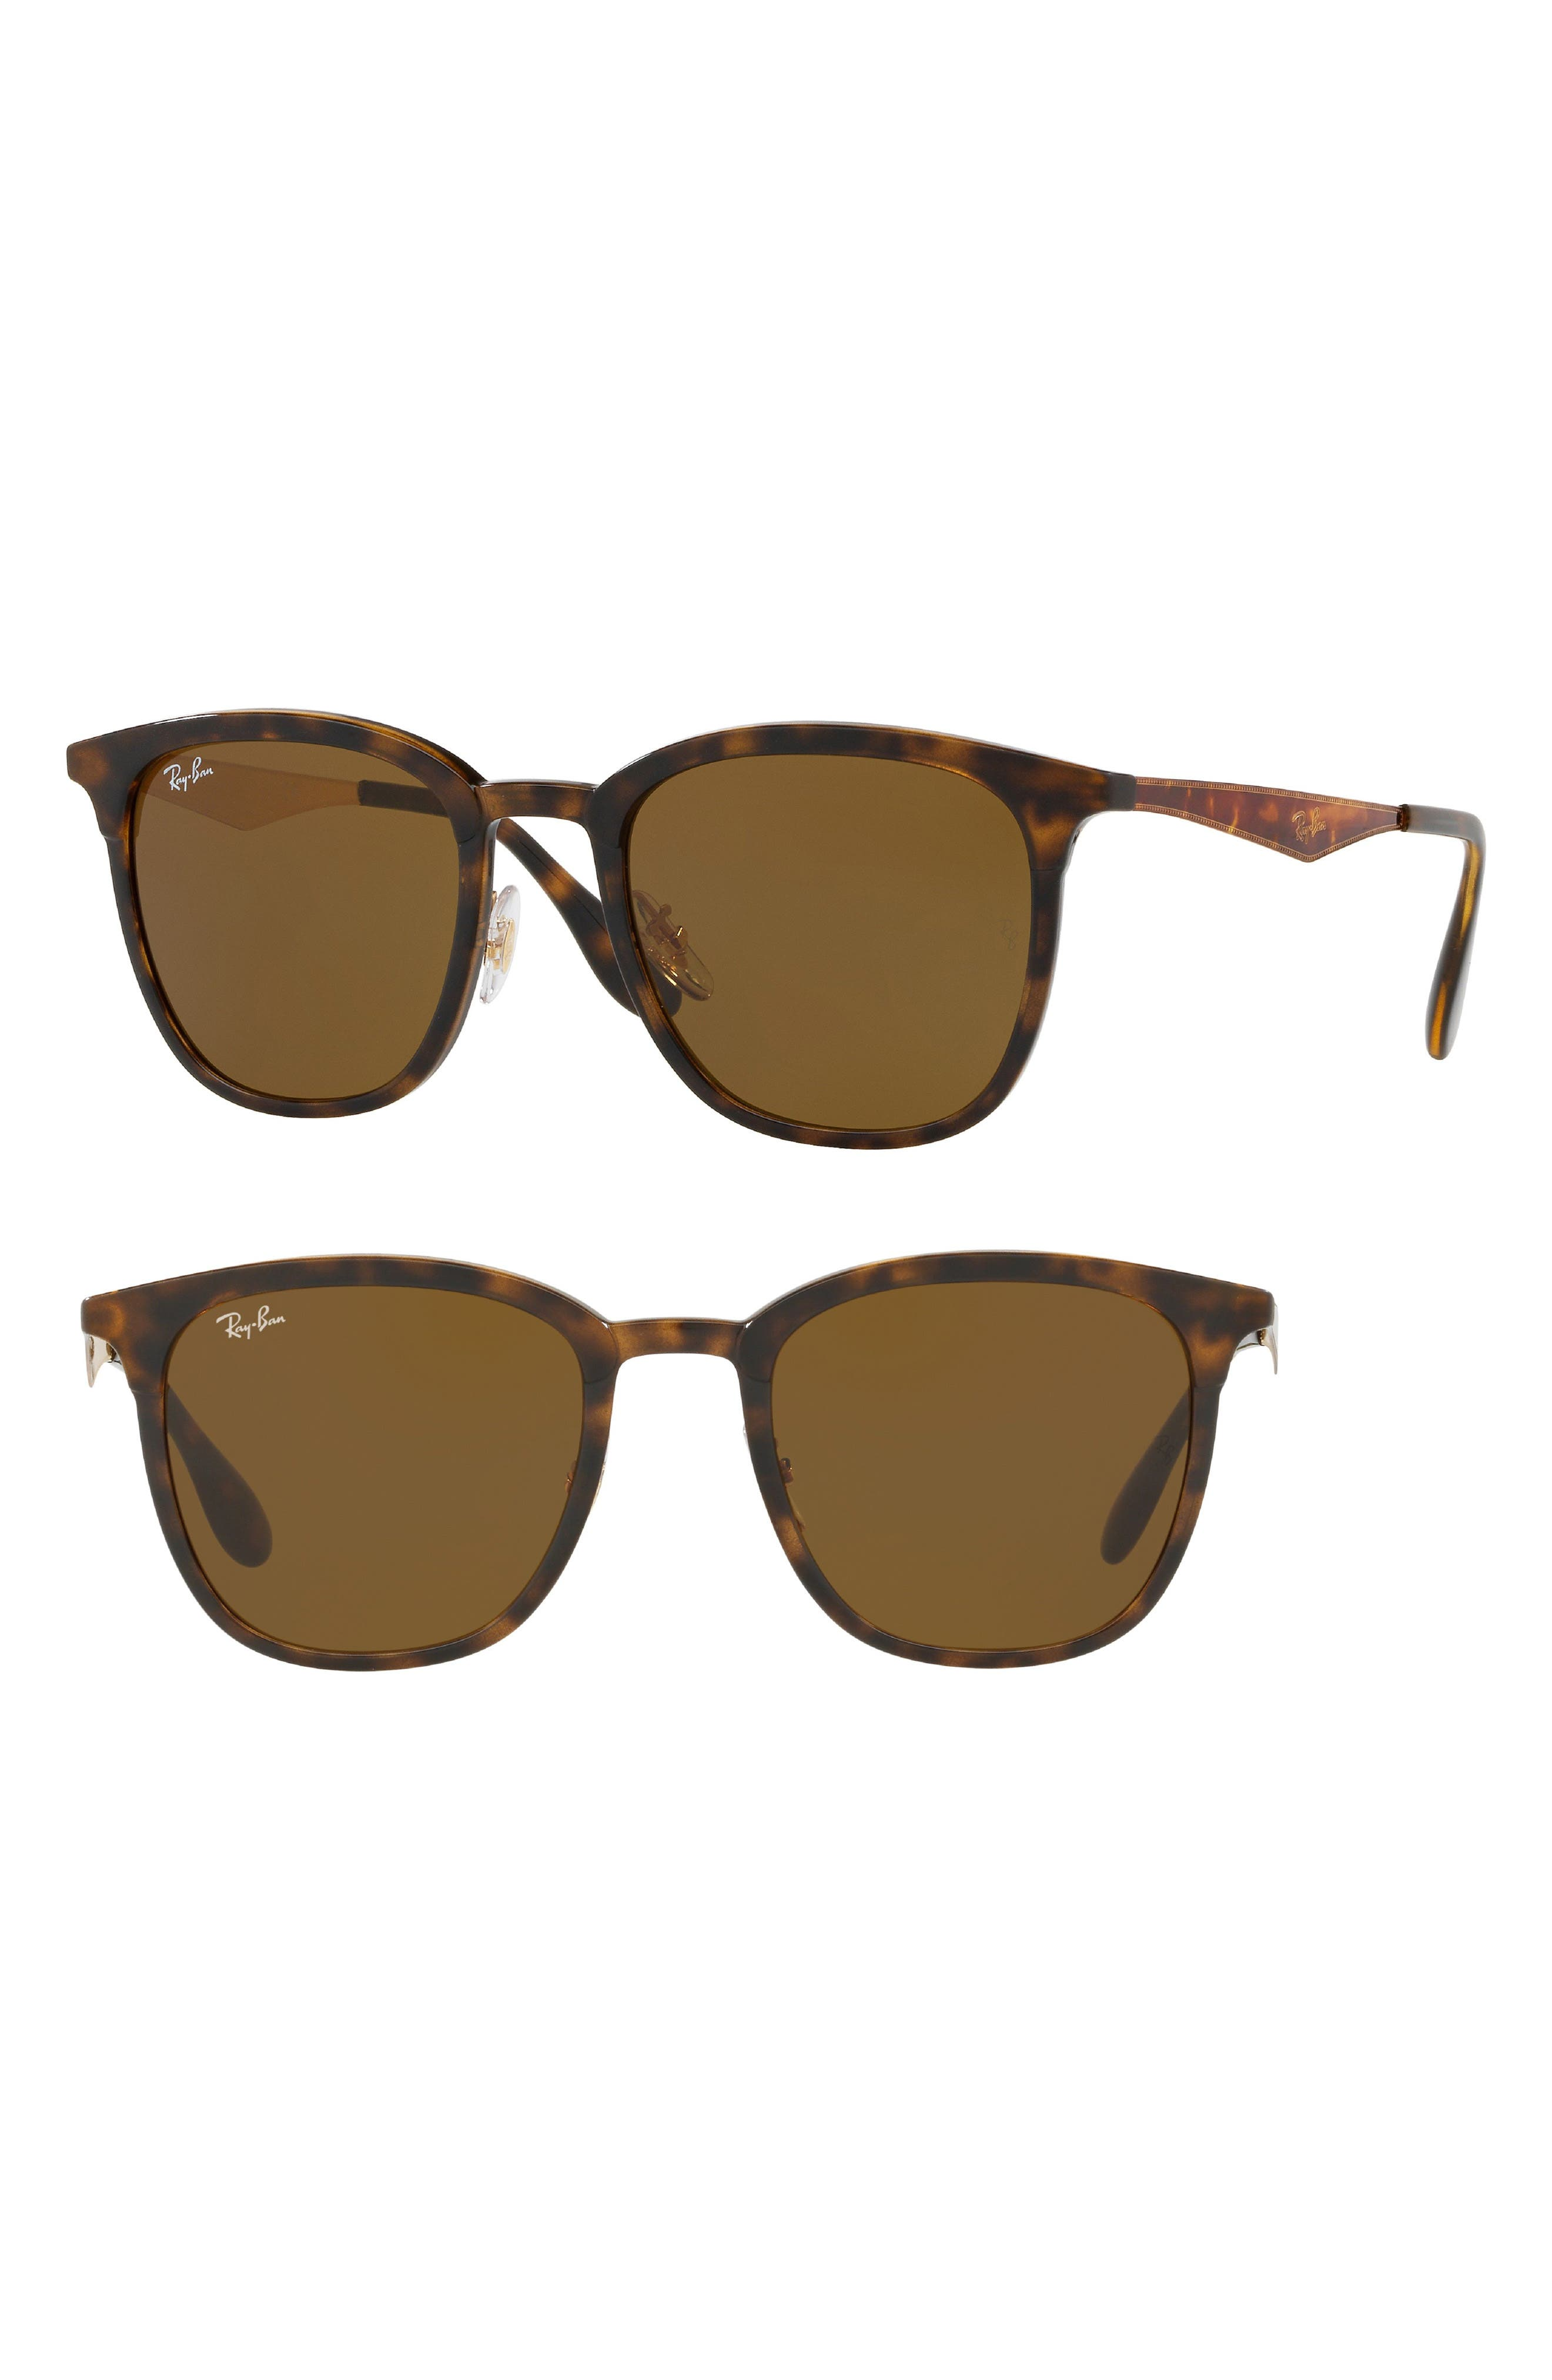 Highstreet 51mm Square Sunglasses,                         Main,                         color, Havana